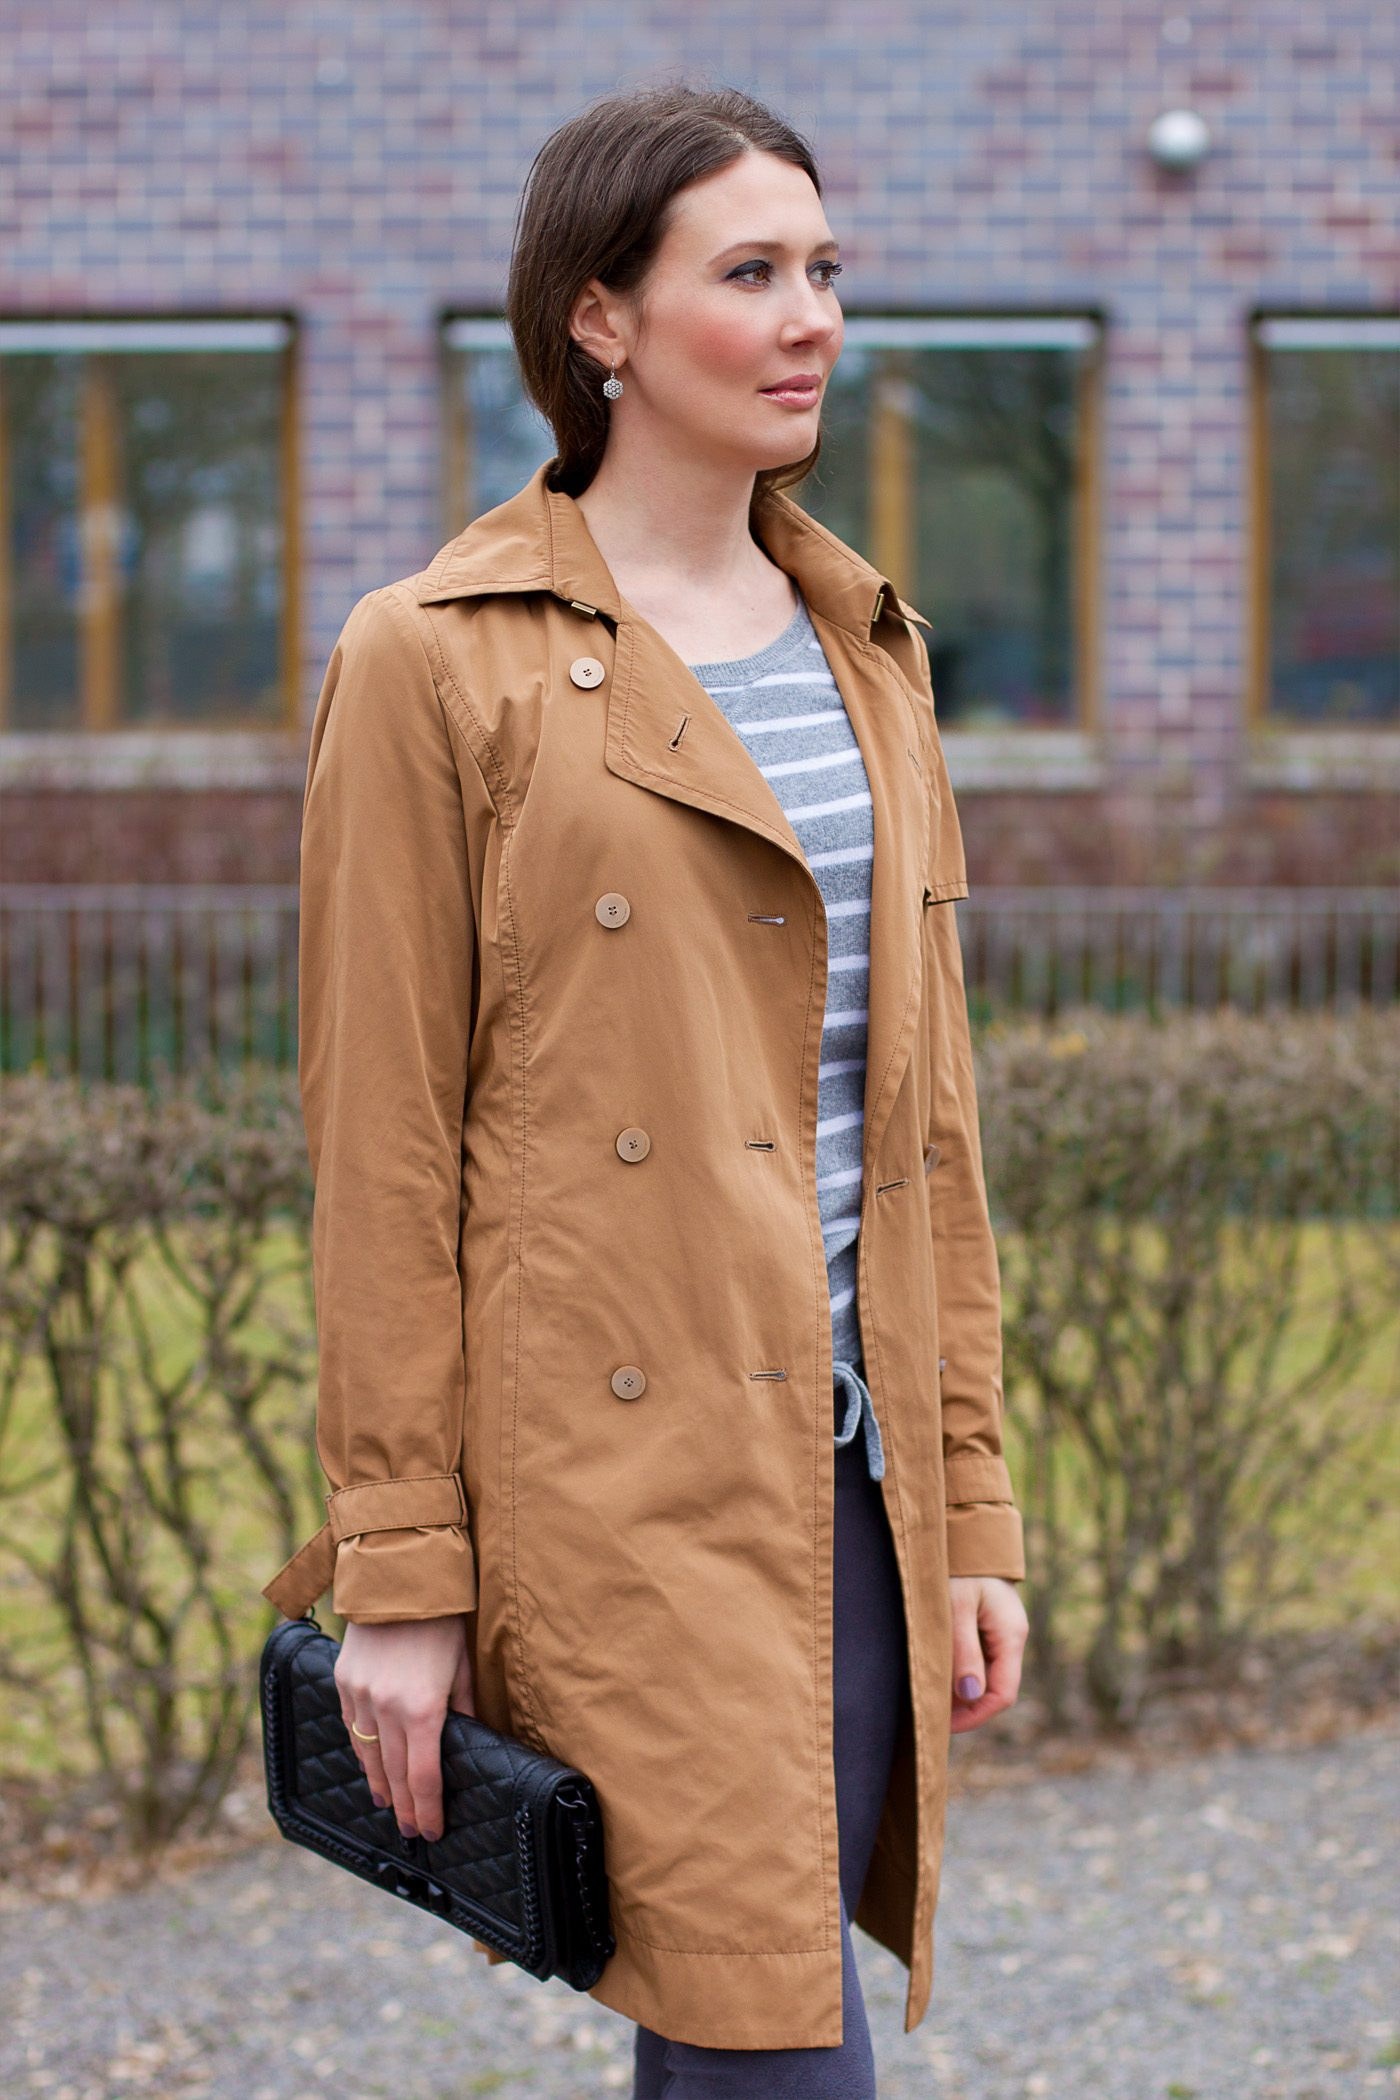 Hugo Boss Trenchcoat Meets Rebecca Minkoff Bag Mood For Style Fashion Blog From Germany